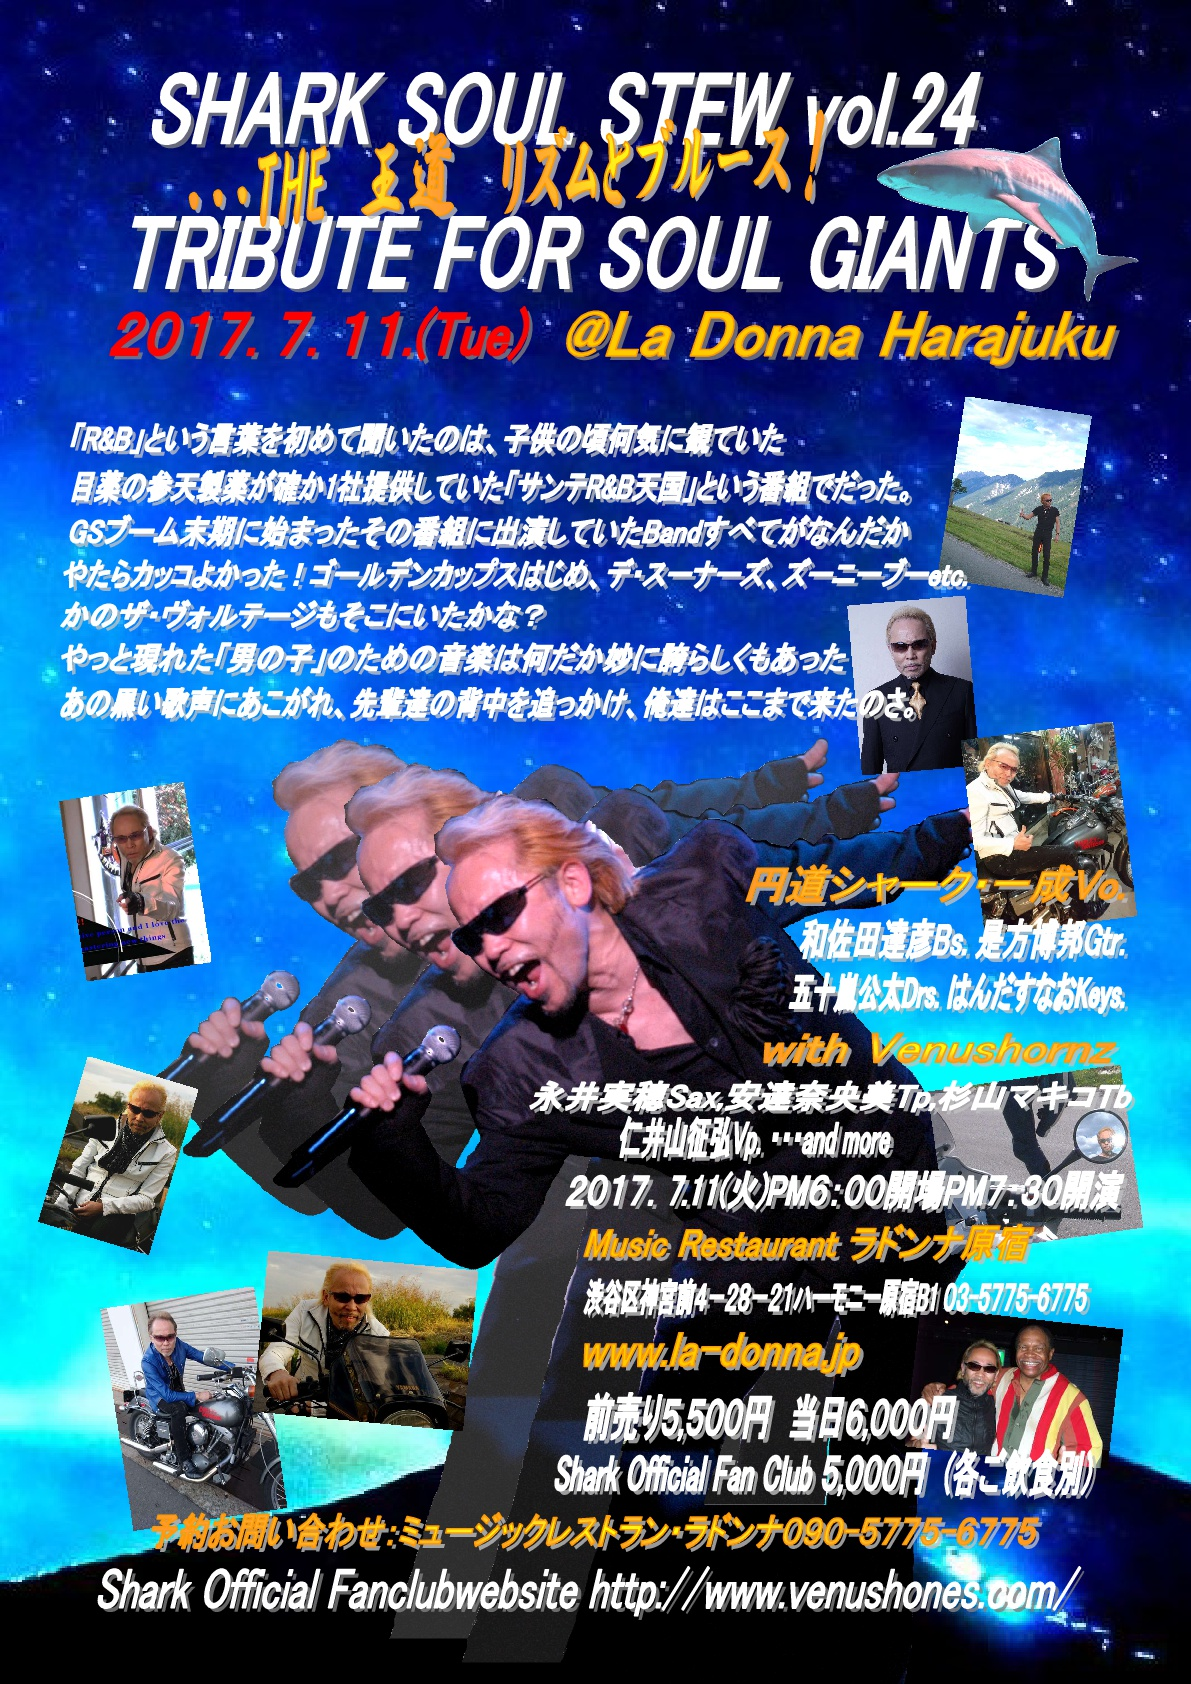 SHARK SOUL STEW vol.24 TRIBUTE FOR SOUL GIANTS